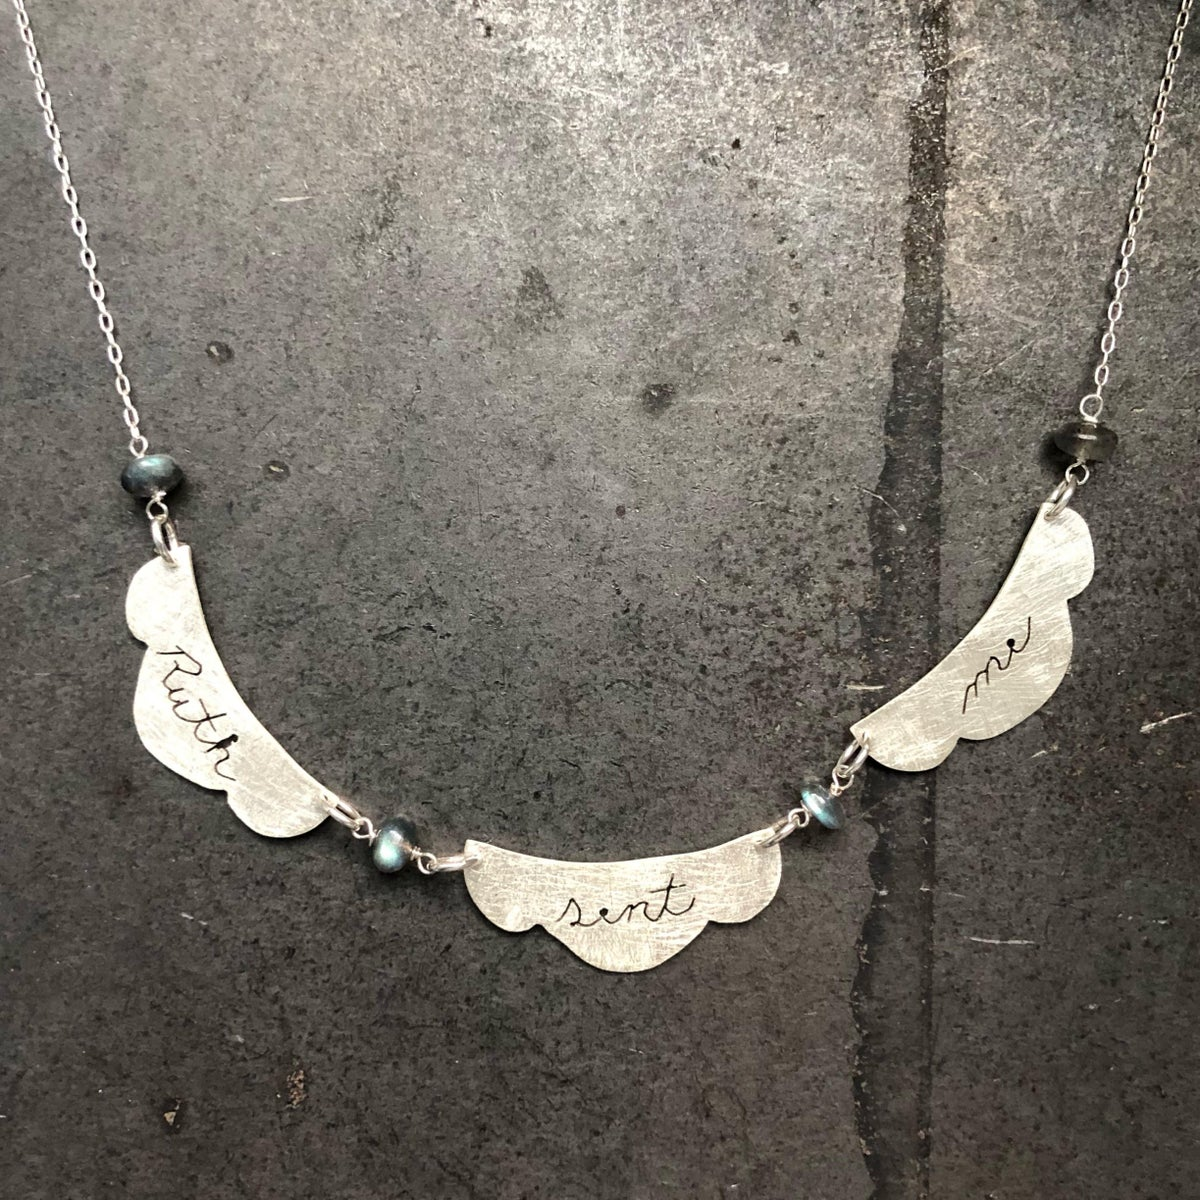 """Ruth sent me"" hand cut sterling silver RBG necklace"